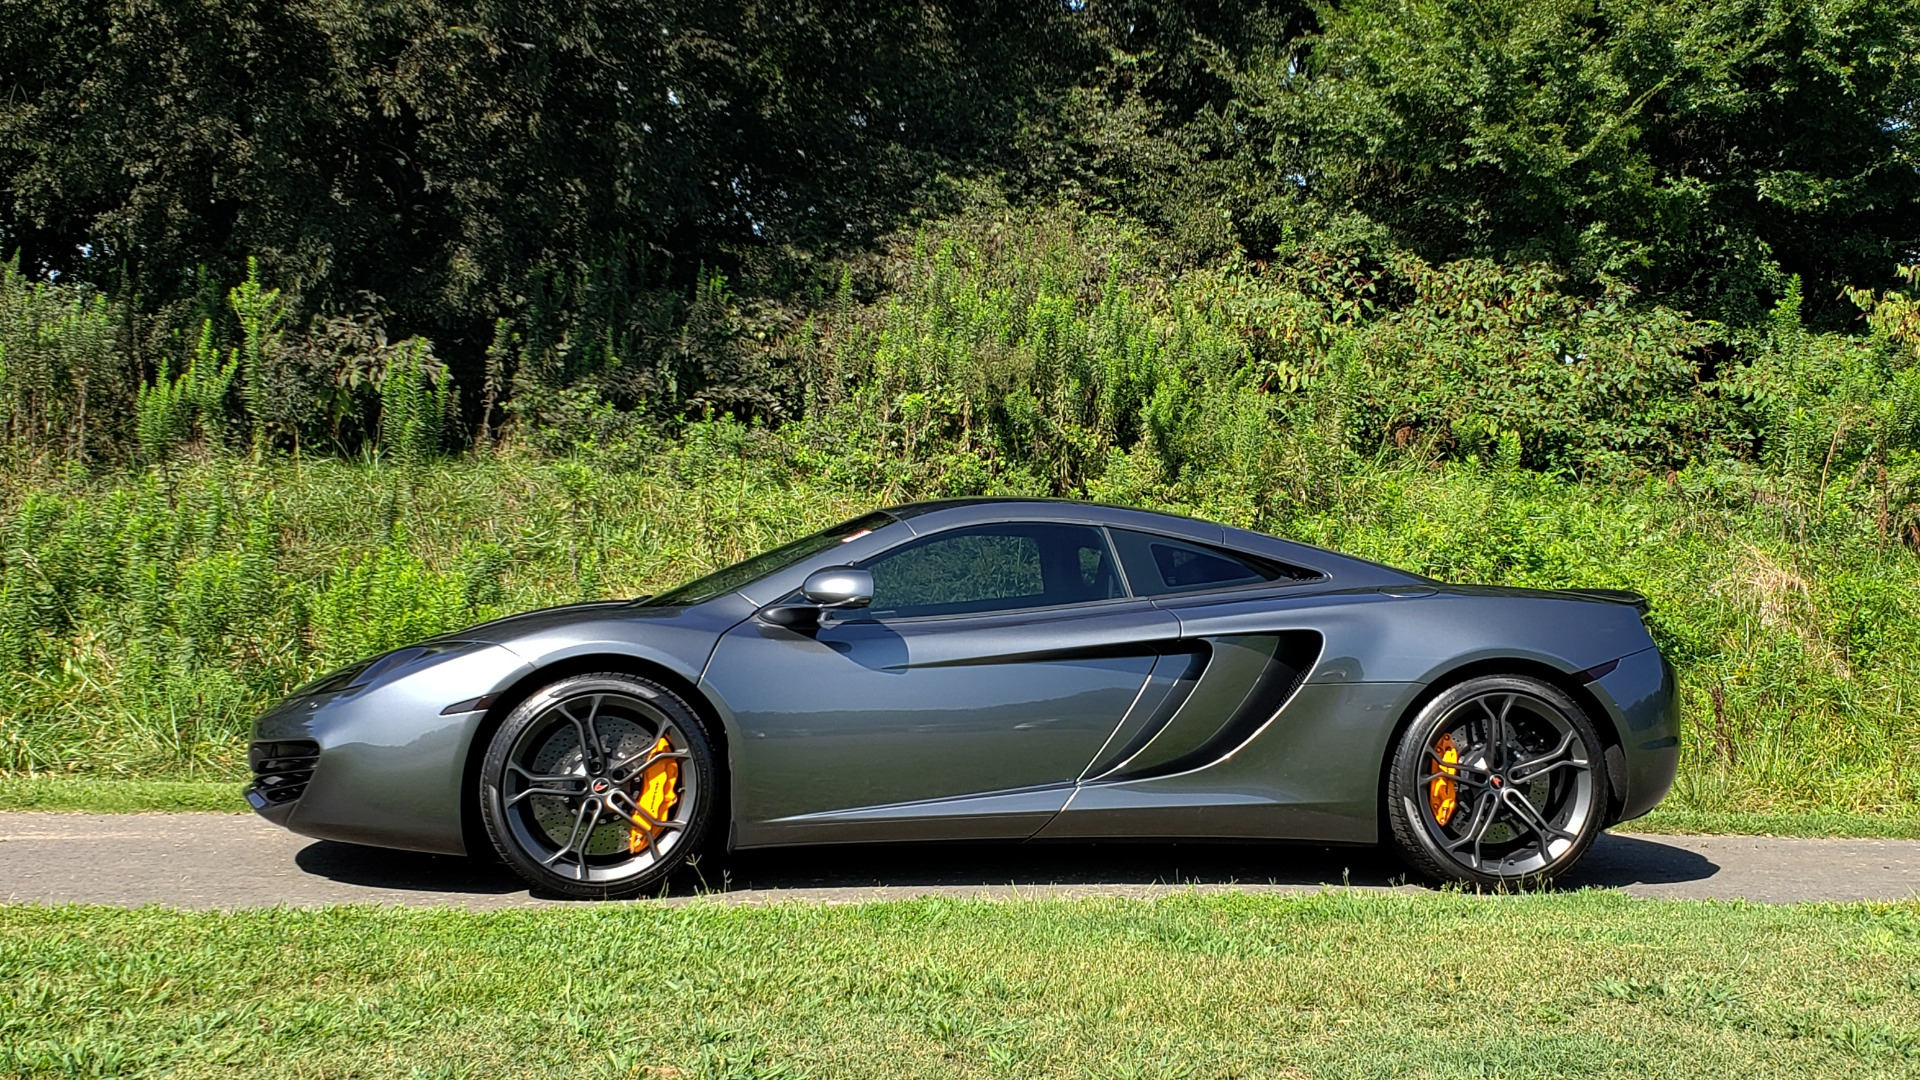 Used 2012 McLaren MP4-12C COUPE / 3.8 L V8 592HP / AUTO / NAV / CCB / LOW MILES for sale Sold at Formula Imports in Charlotte NC 28227 10